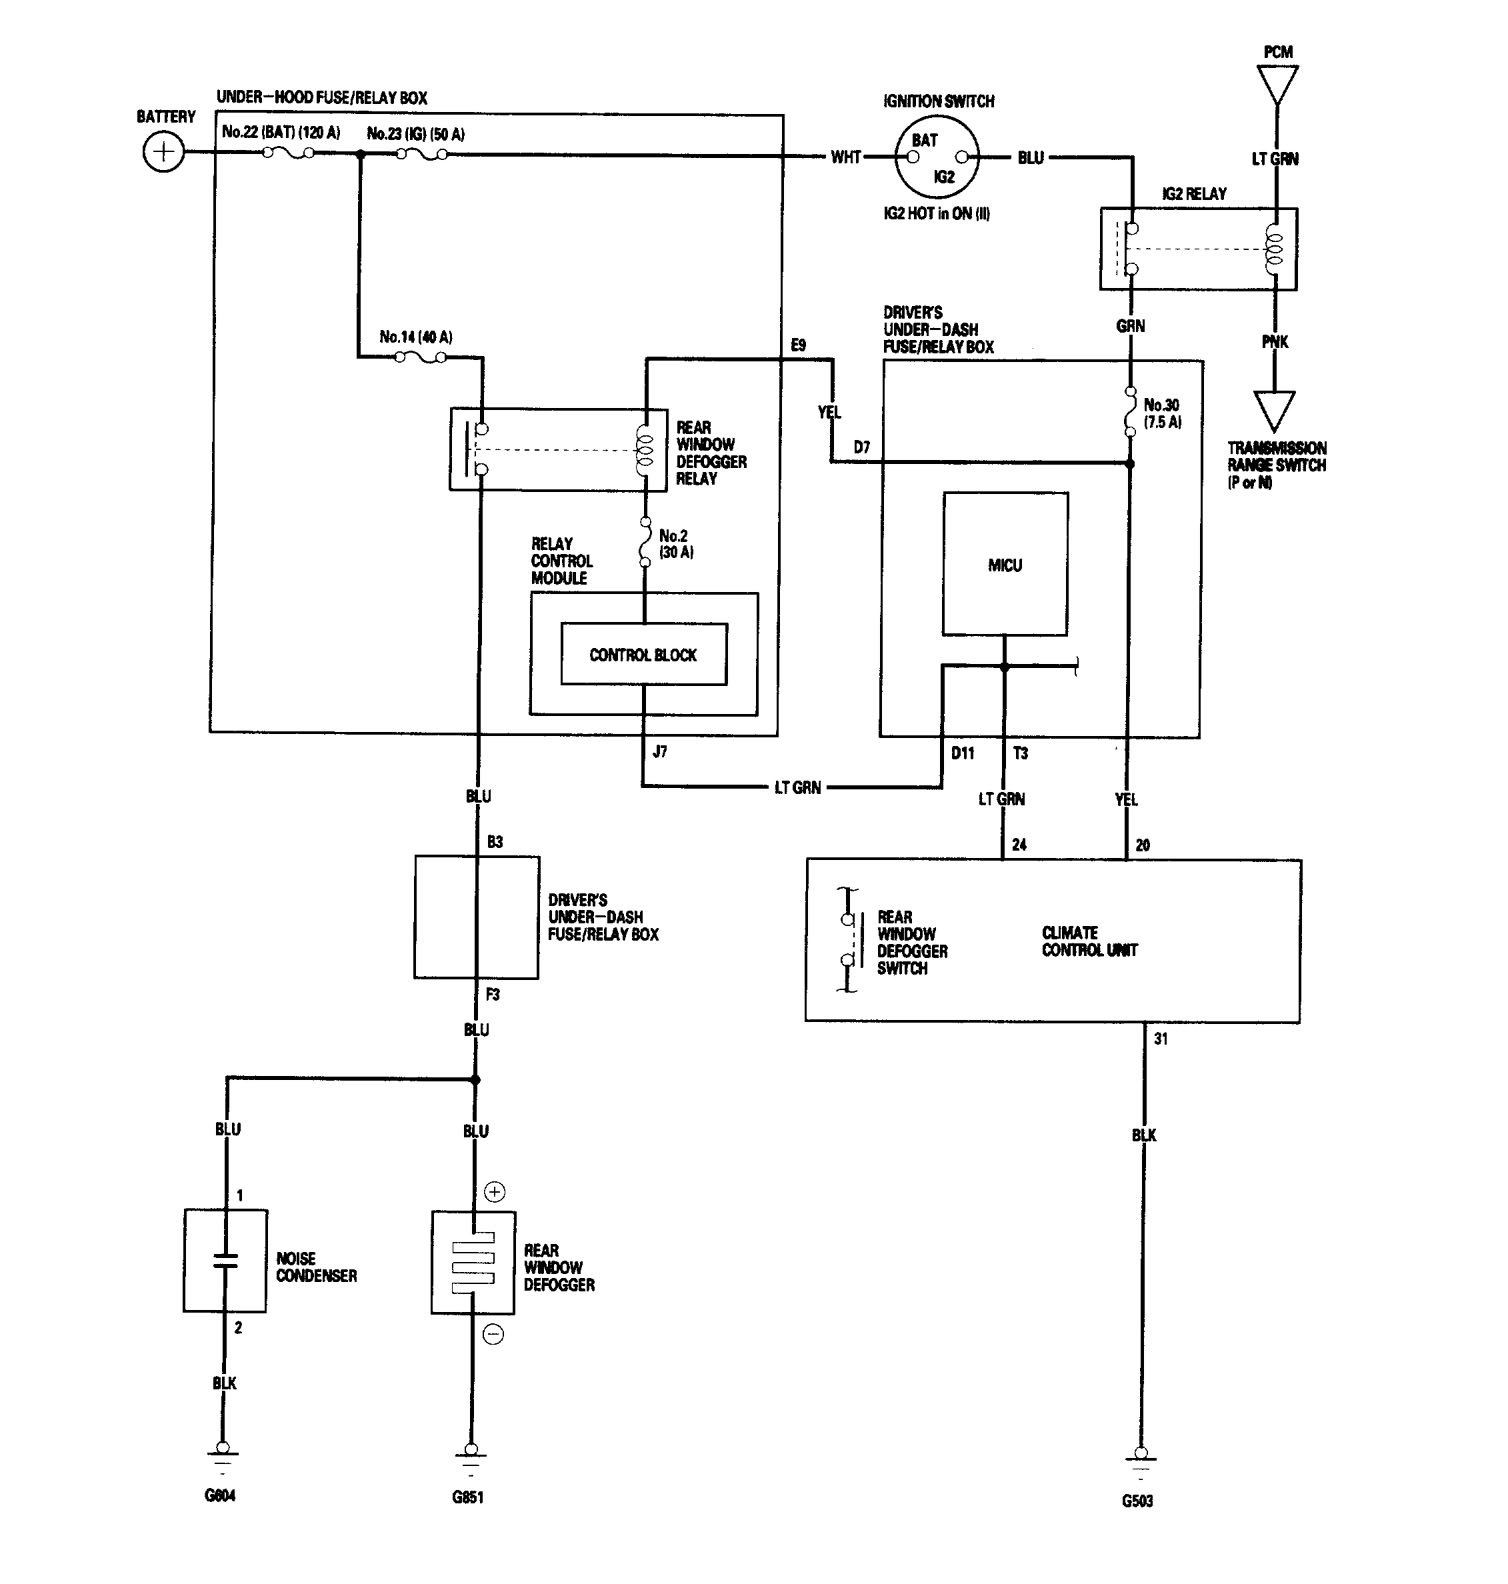 acura integra fuse diagram enthusiast wiring diagrams